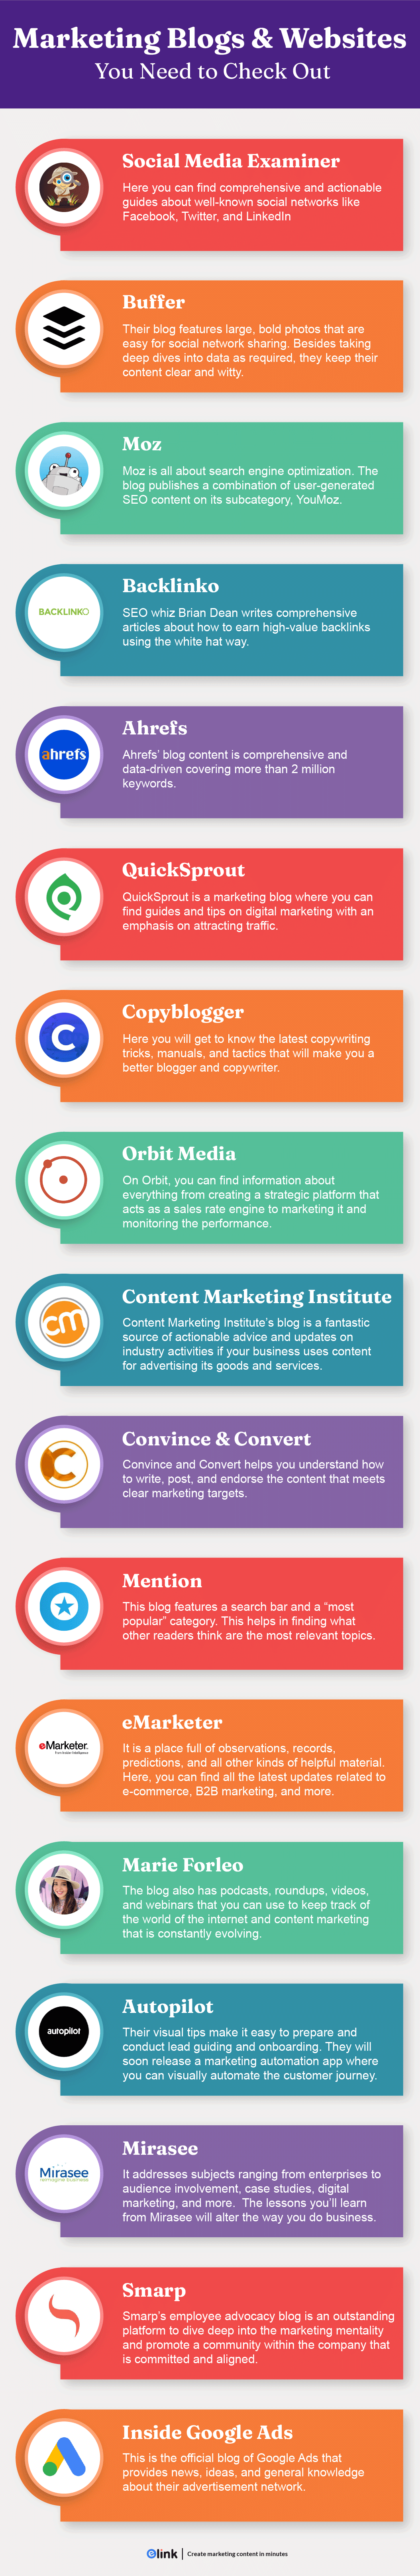 Marketing blogs and websites infographic